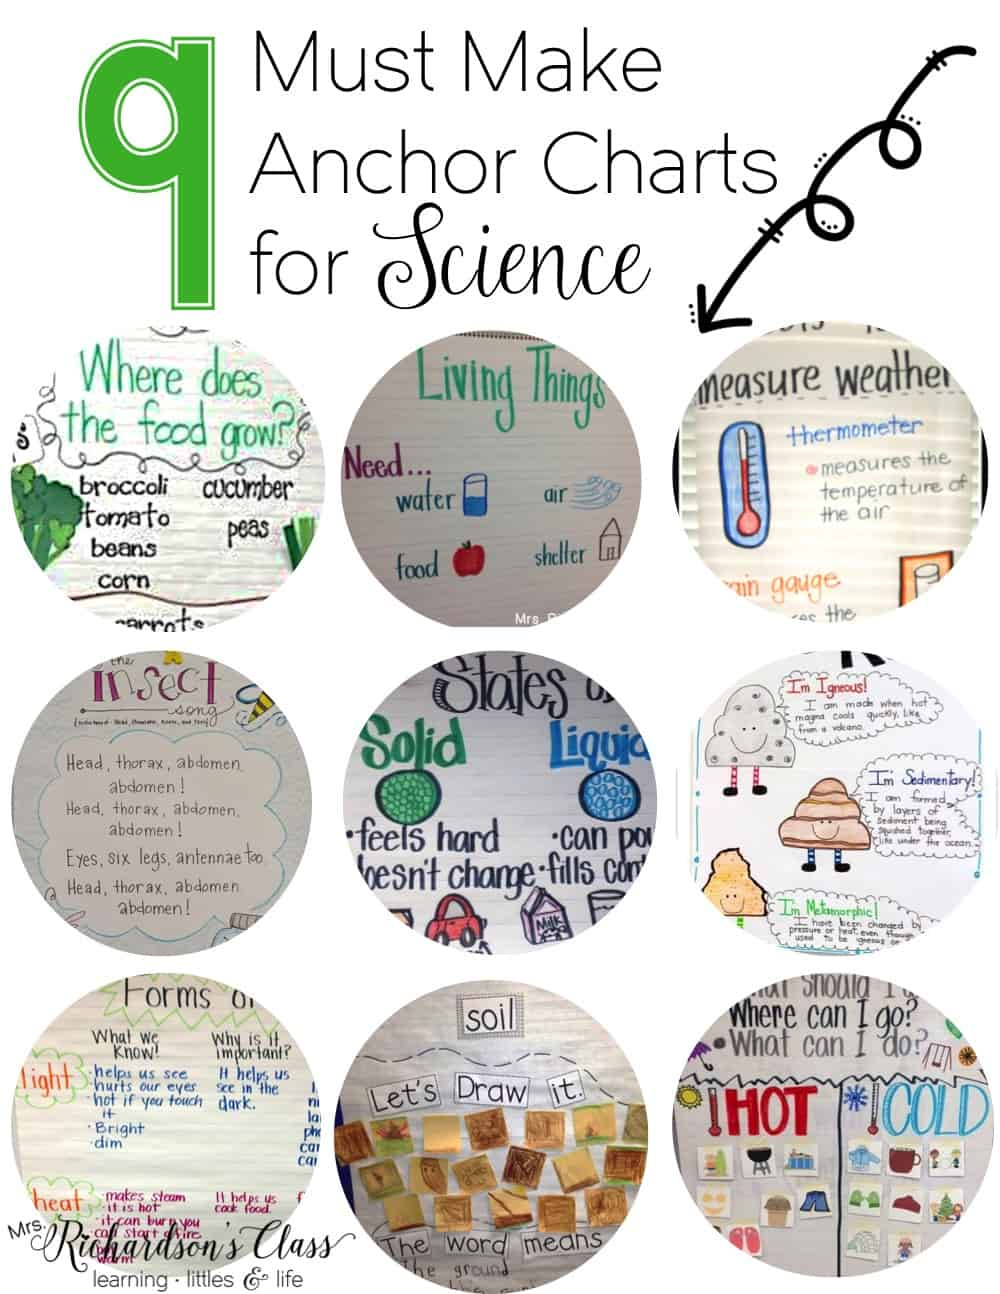 9 Must Make Anchor Charts for Science Mrs Richardsons Class – Anchor Charts